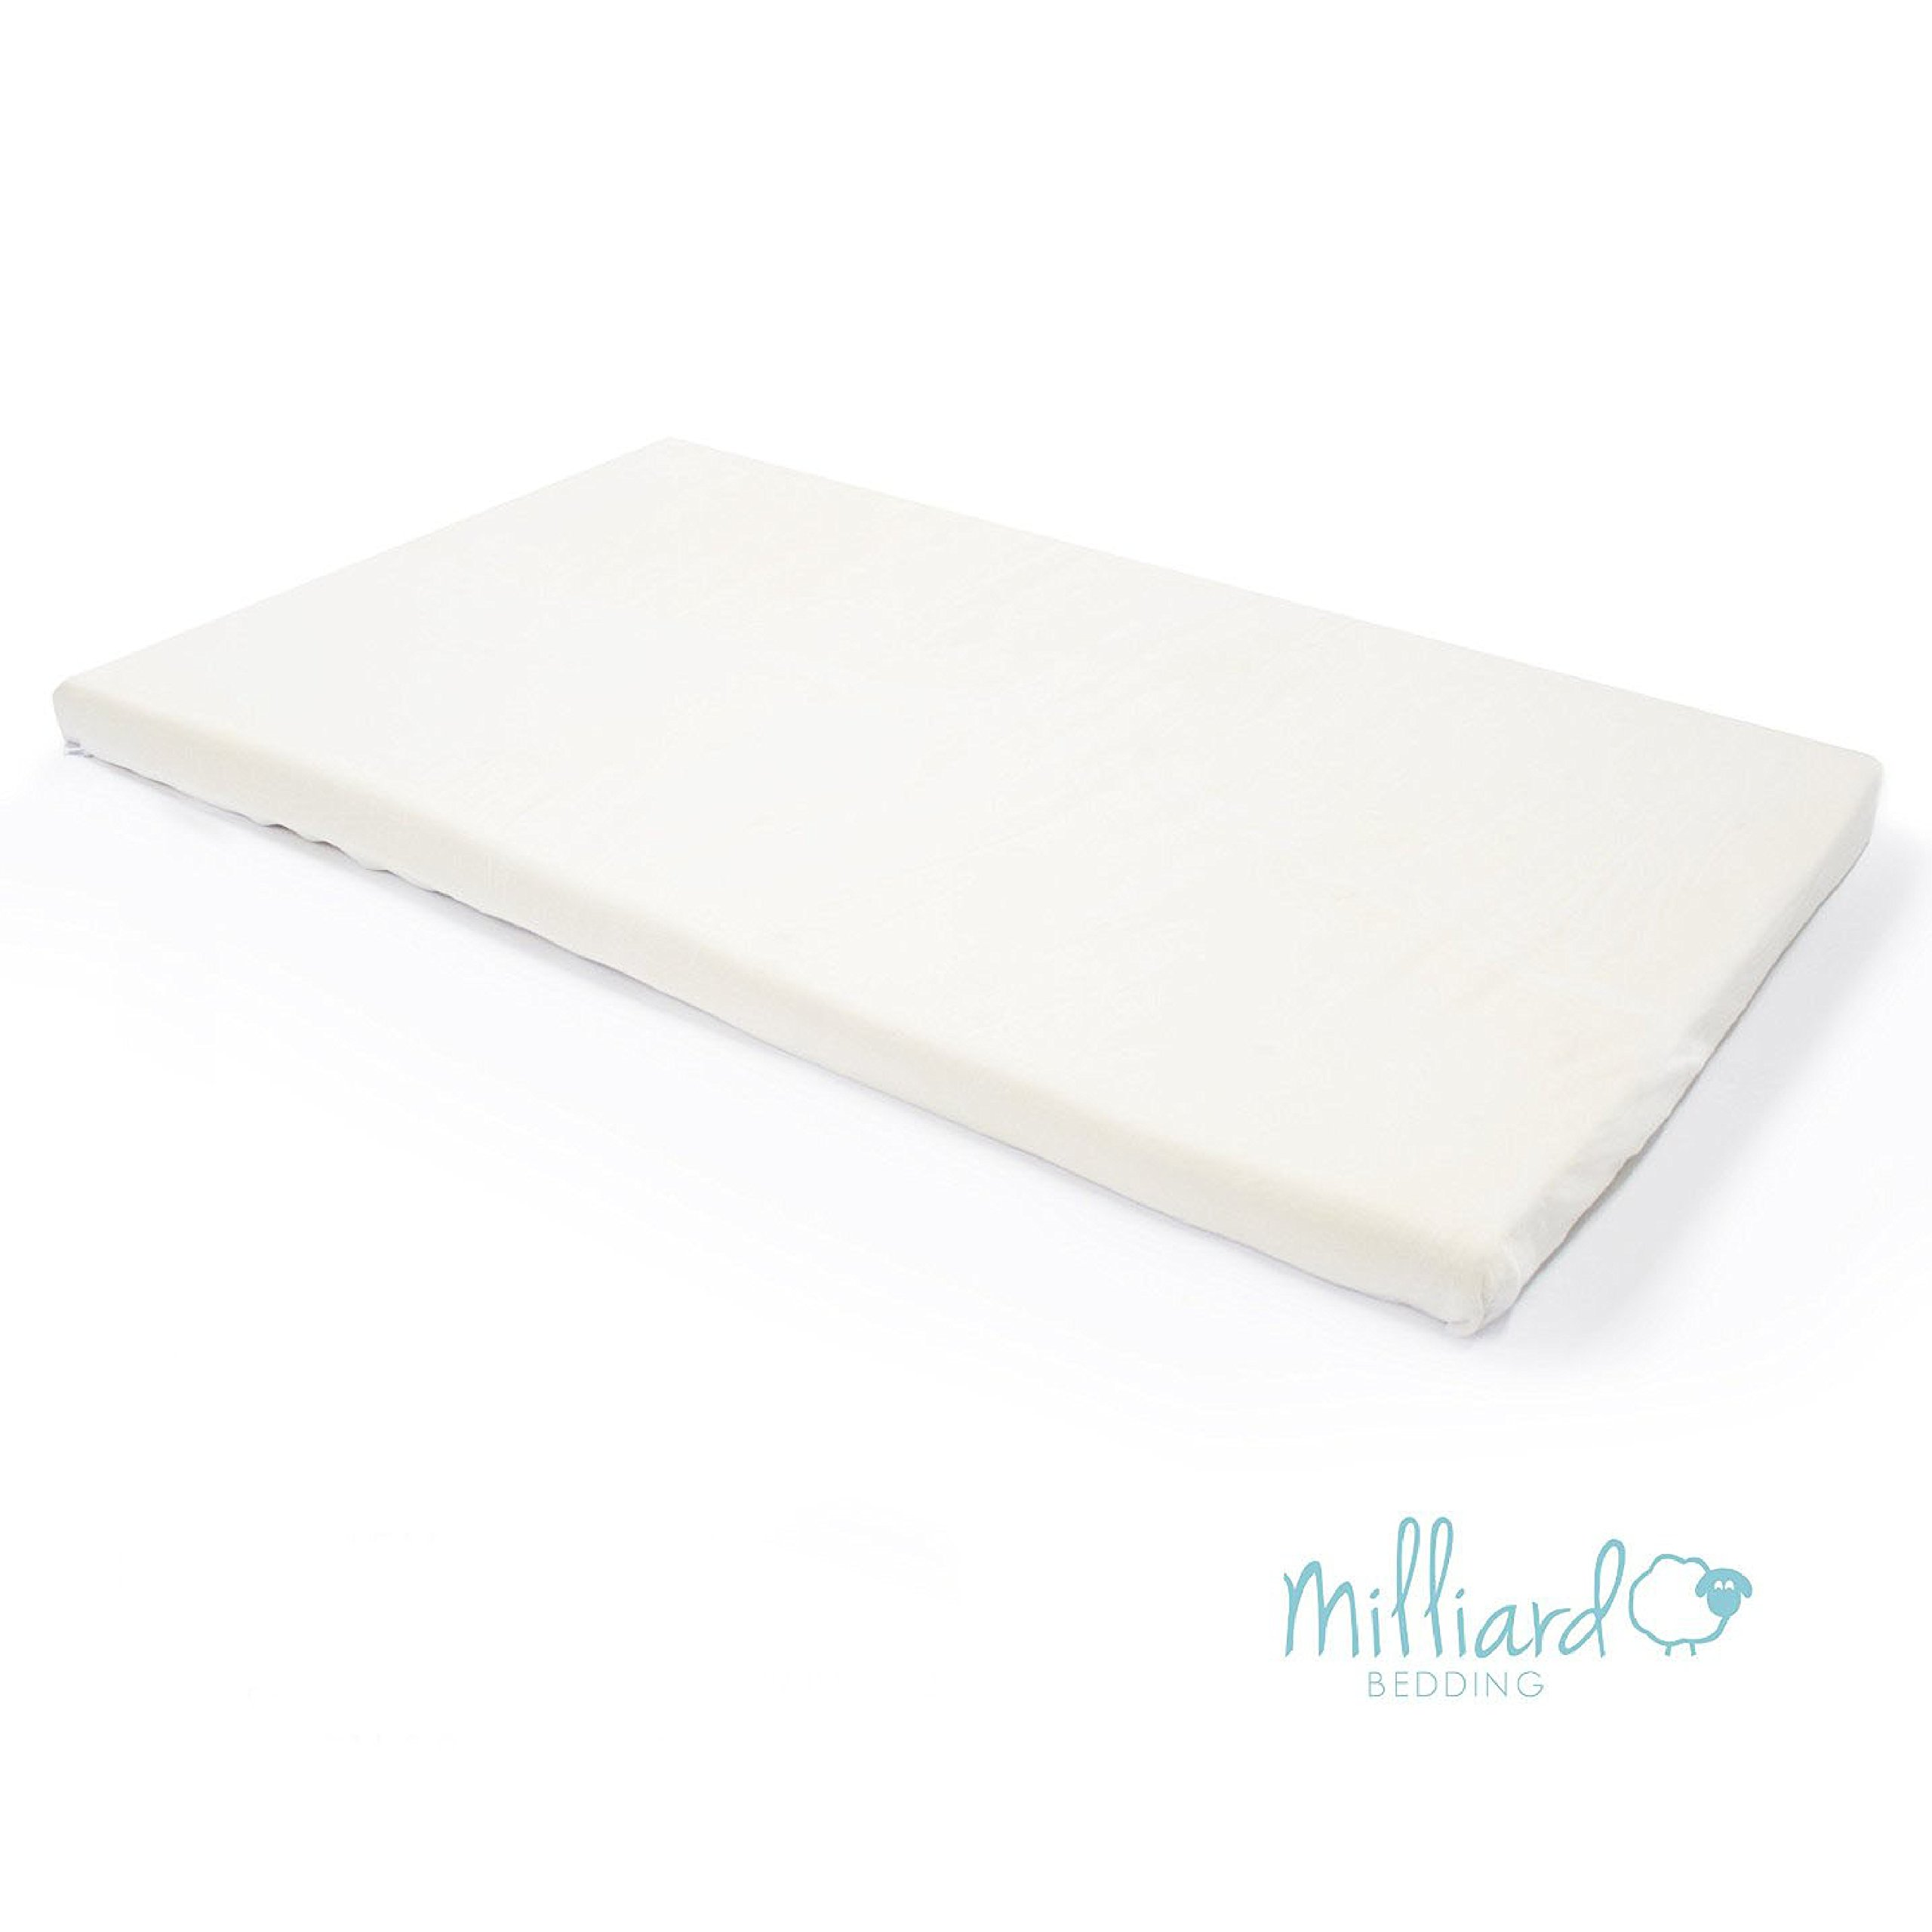 Milliard Memory Foam Crib Mattress Topper – For Standard Cribs and Toddler Beds by Milliard